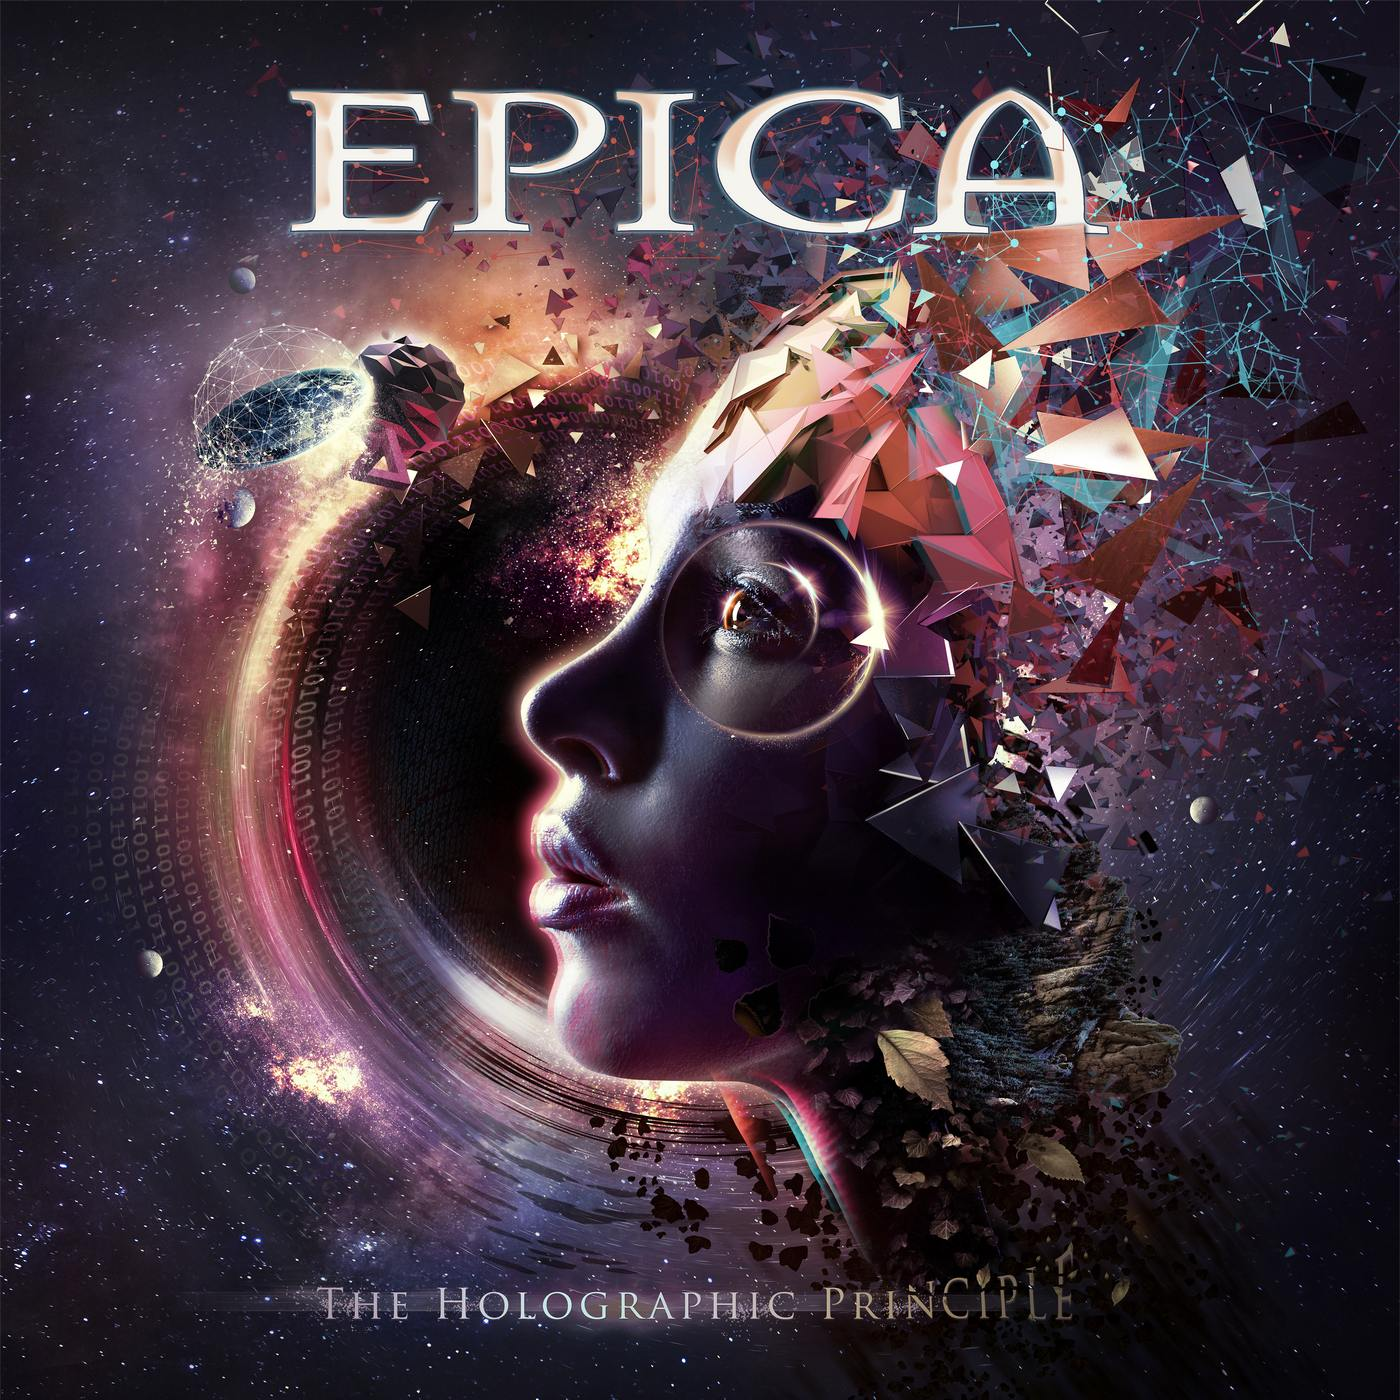 Epica: The holographic Principle (2016) Book Cover